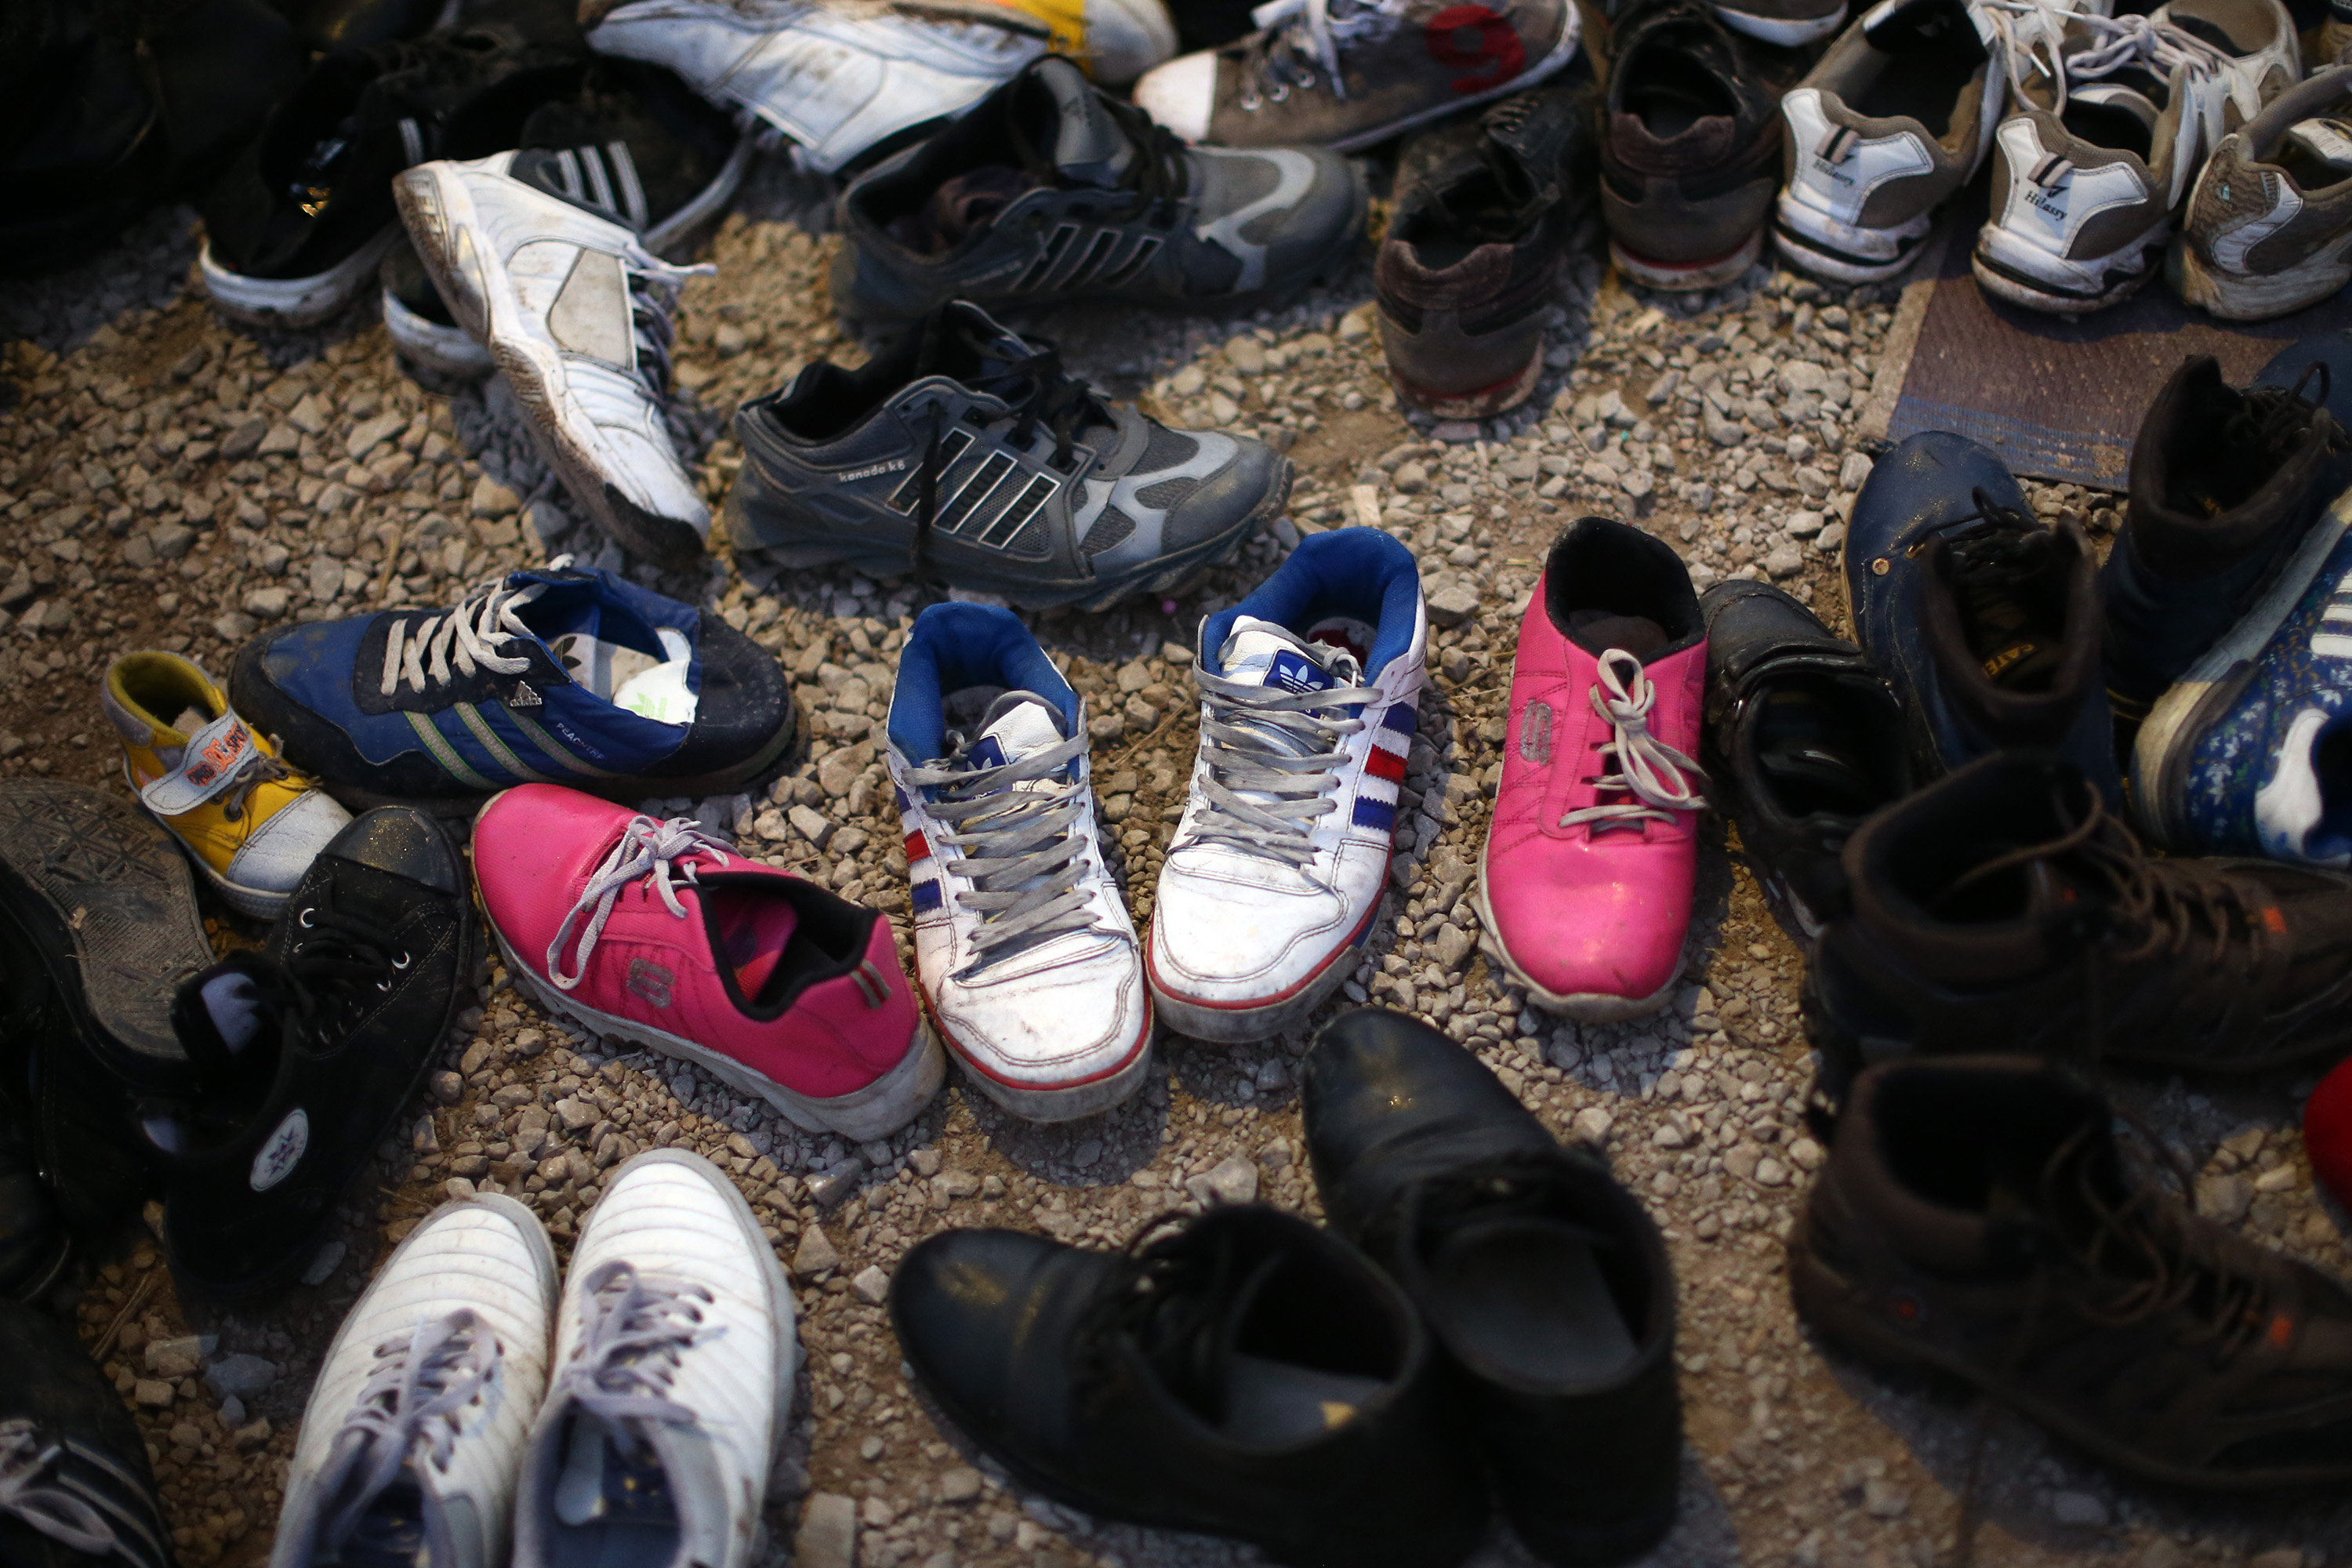 Migrants shoes are laid out to dry in a reception centre after they made the crossing from Turkey to the Greek island of Lesbos on November 14, 2015 in Sikaminias, Greece.